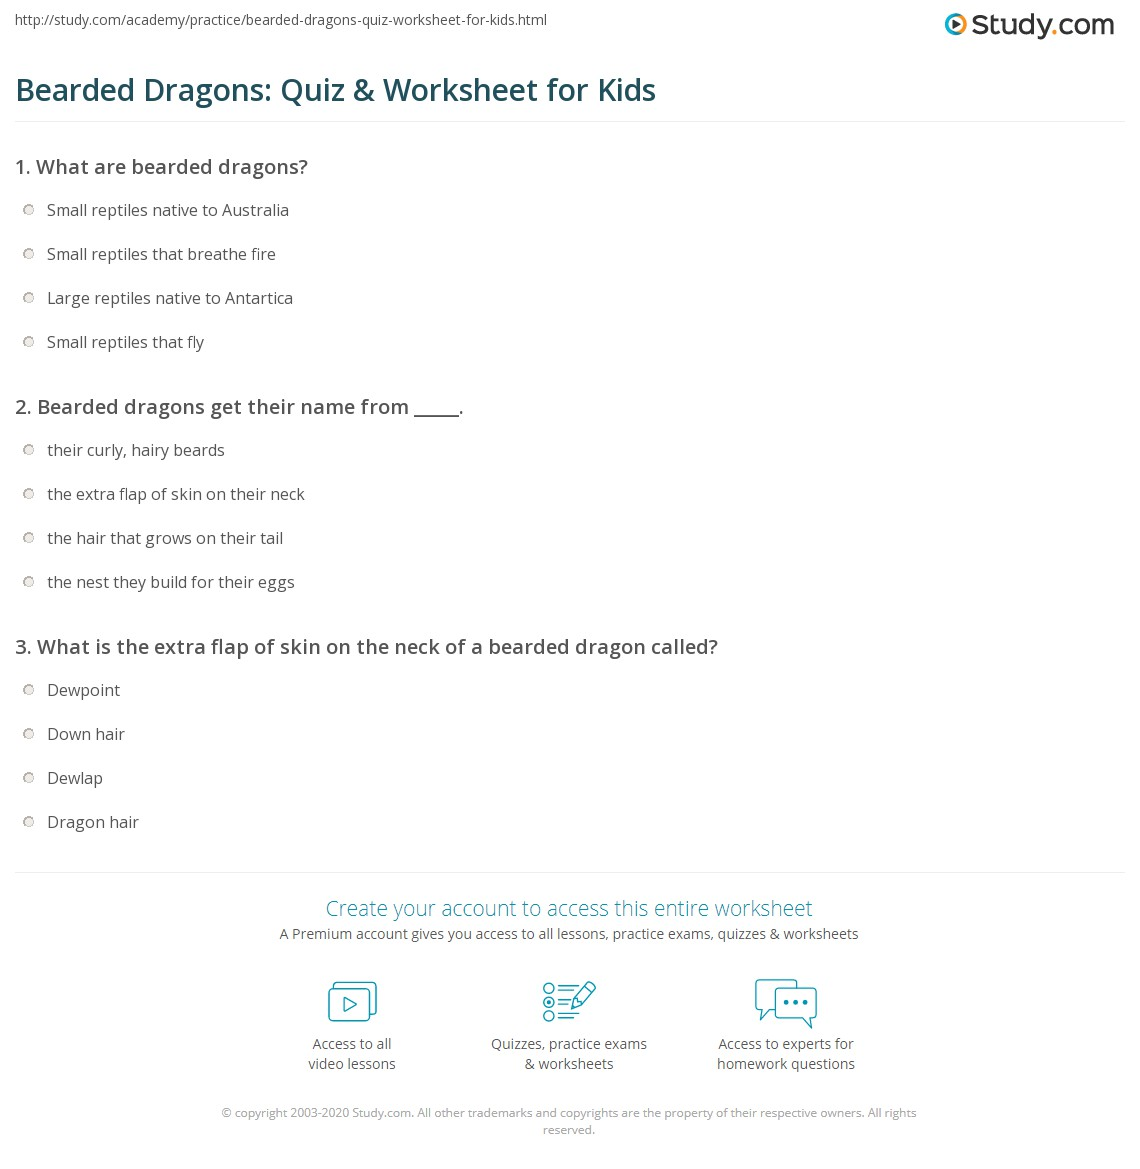 Bearded Dragons: Quiz & Worksheet for Kids | Study.com